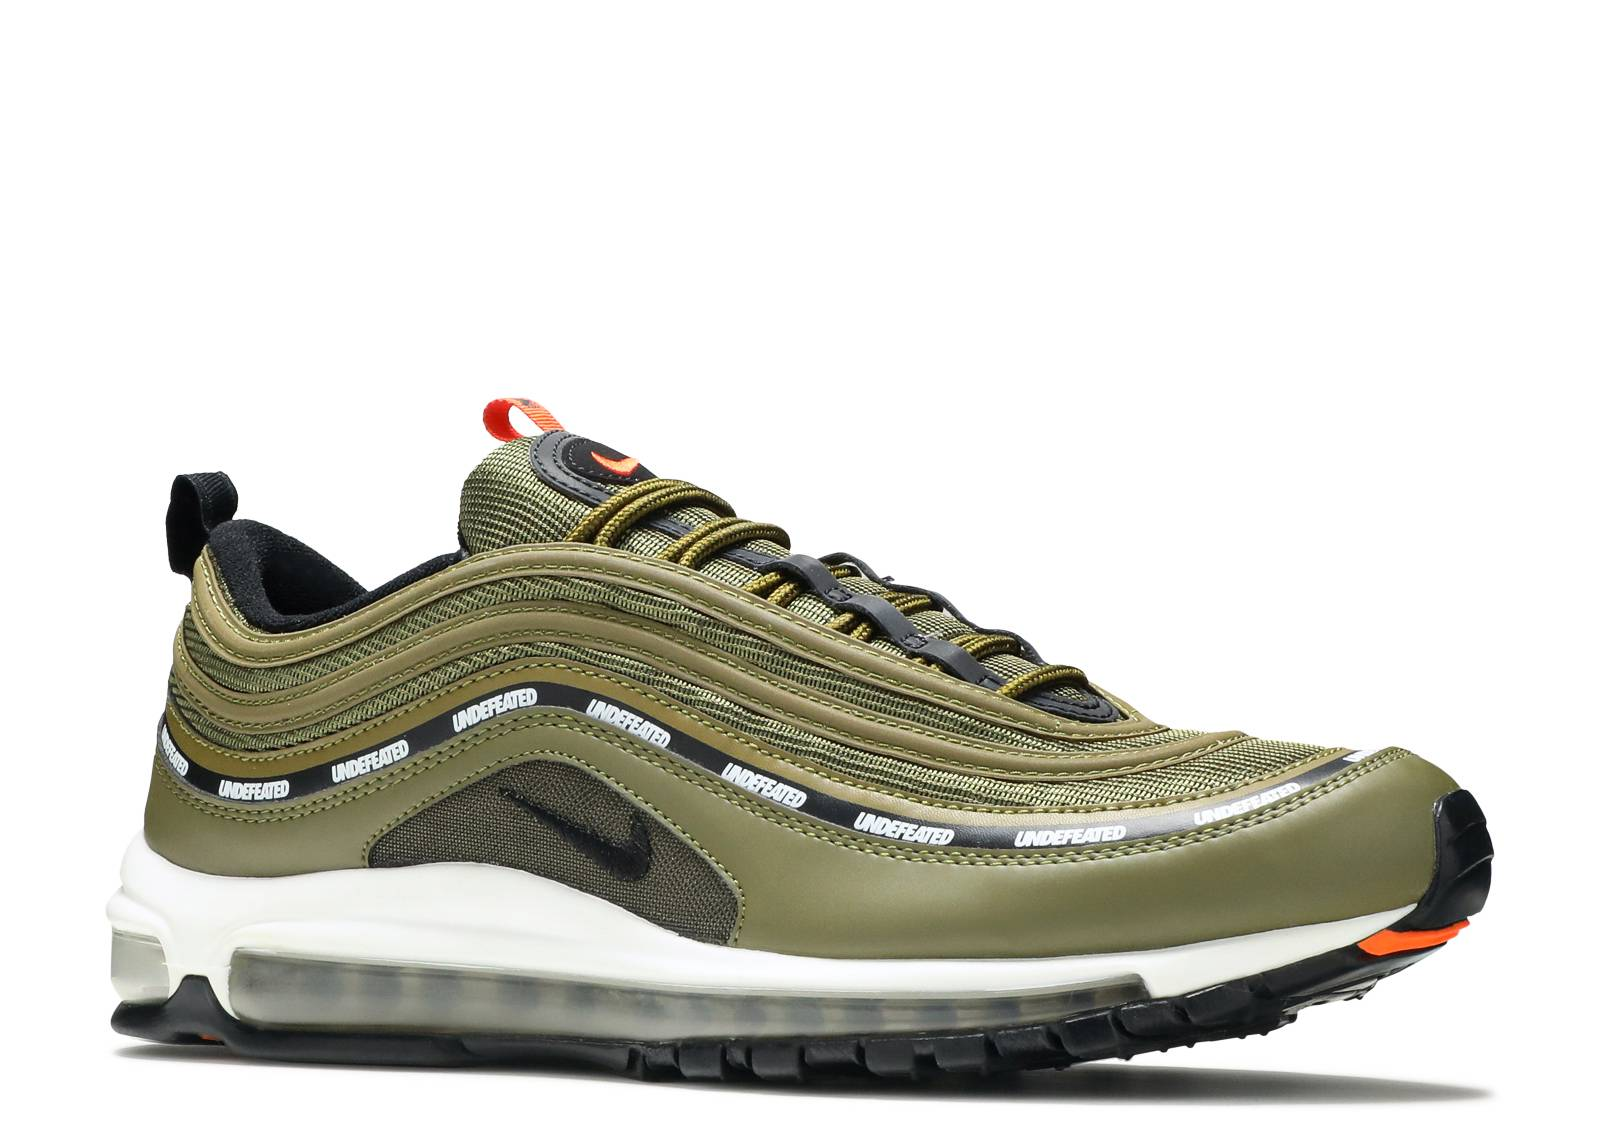 Hot Selling Nike Air Max 97 UL '17 Olive Green White Women's Men's Running Shoes Trainers DC009692